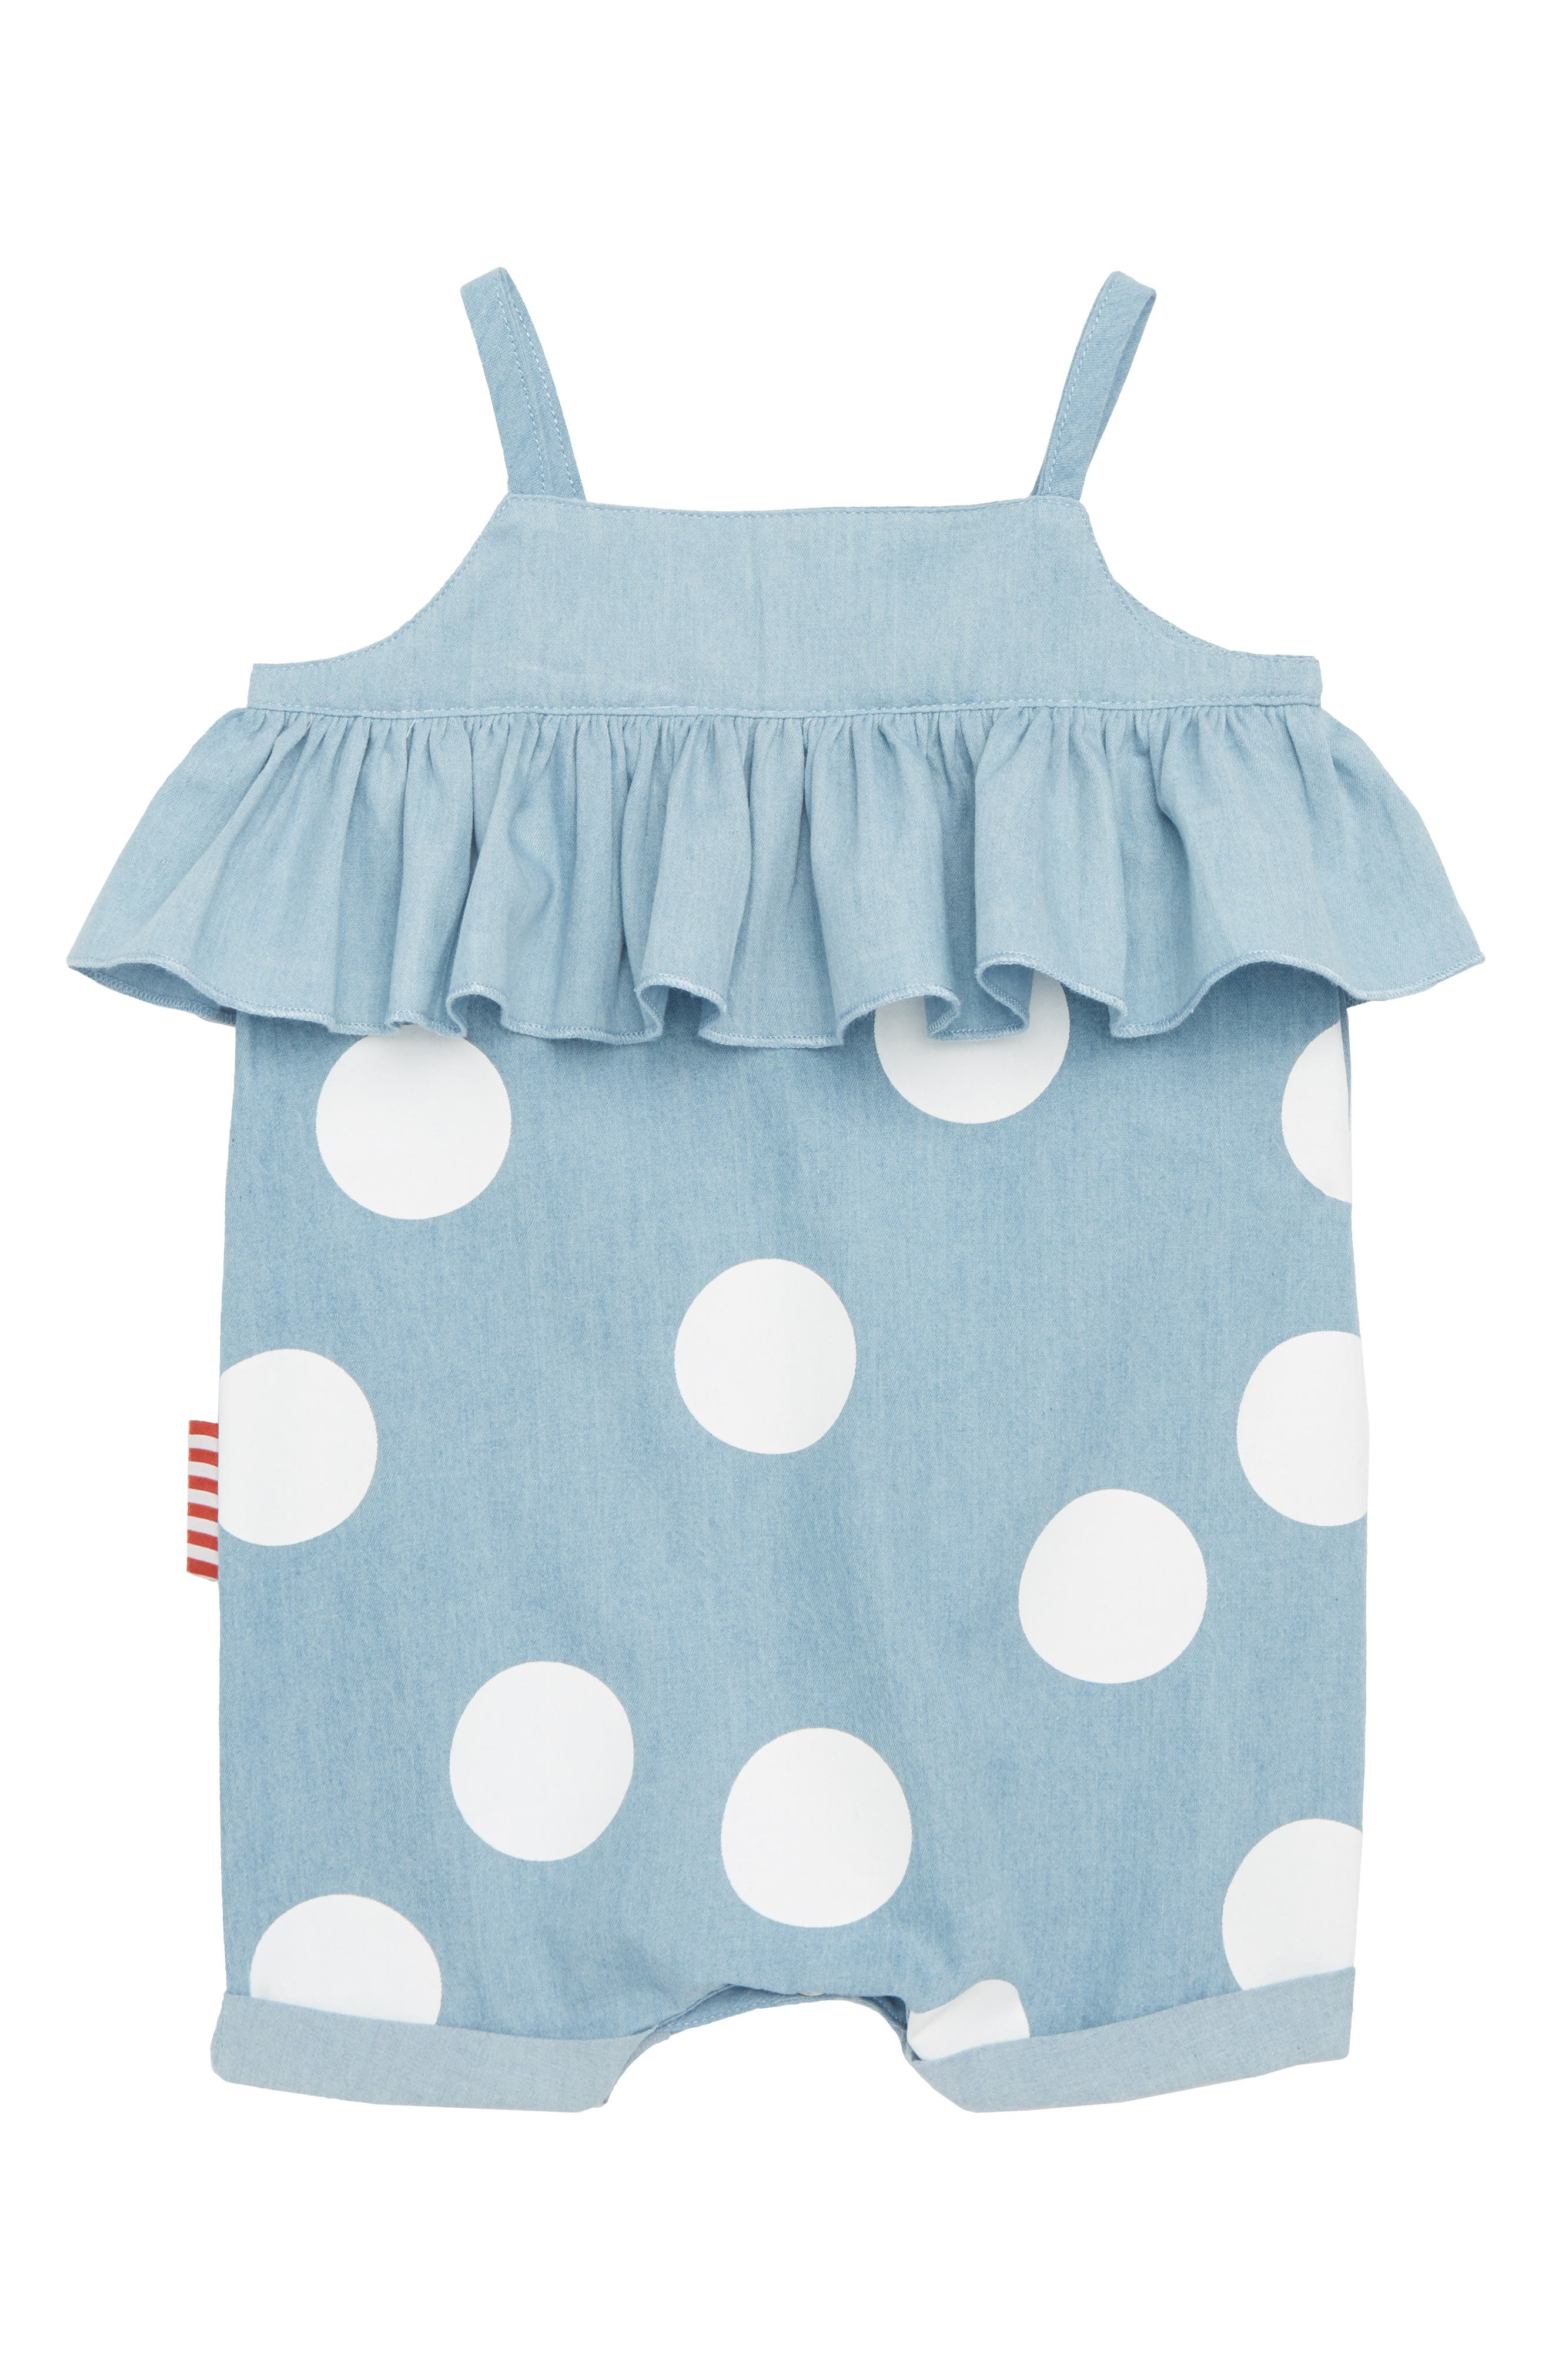 Main Image - SOOKIbaby Spotty Chambray Romper (Baby Girls)